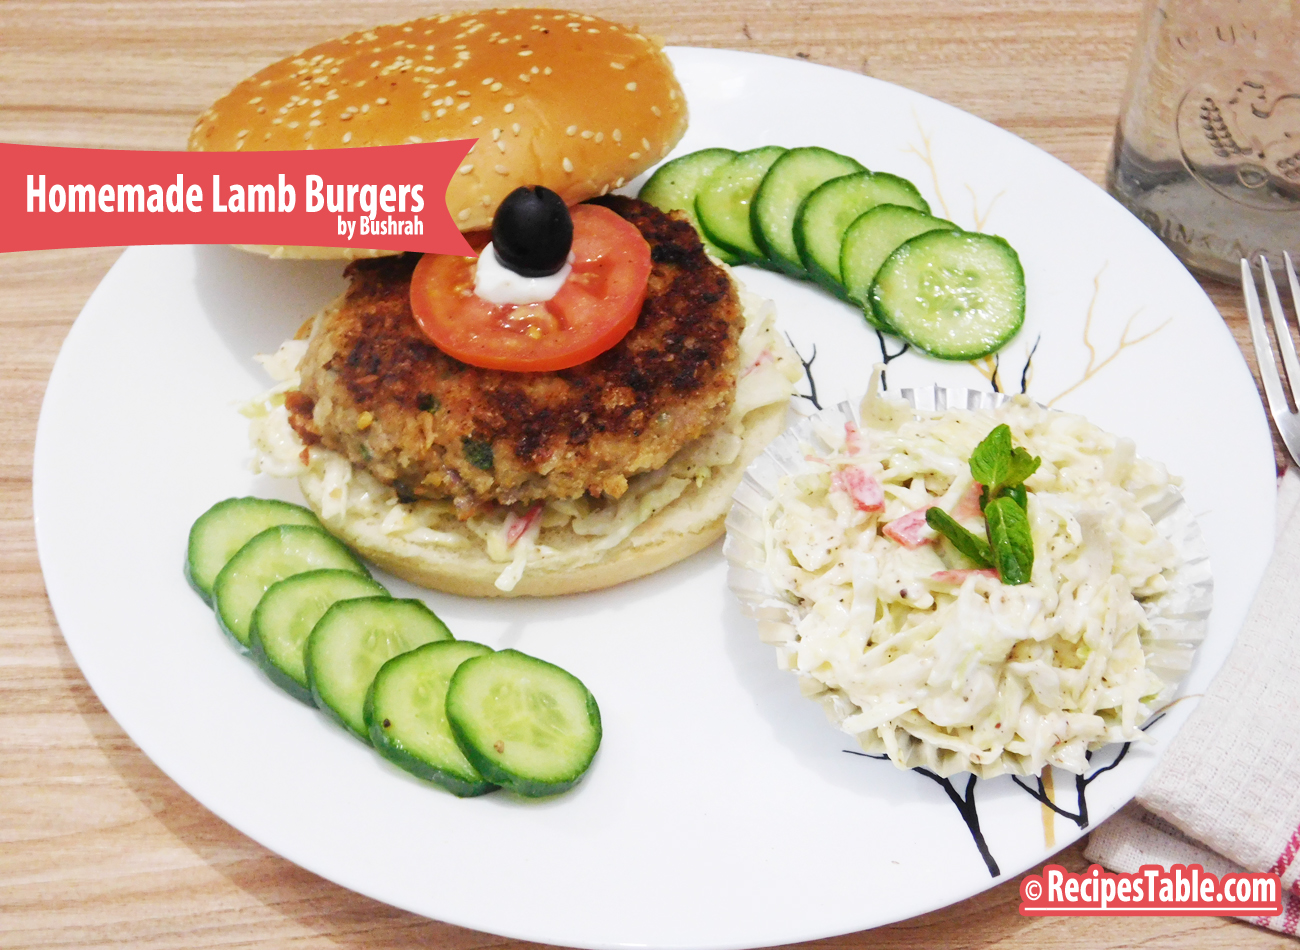 Homemade Lamb Burgers recipe